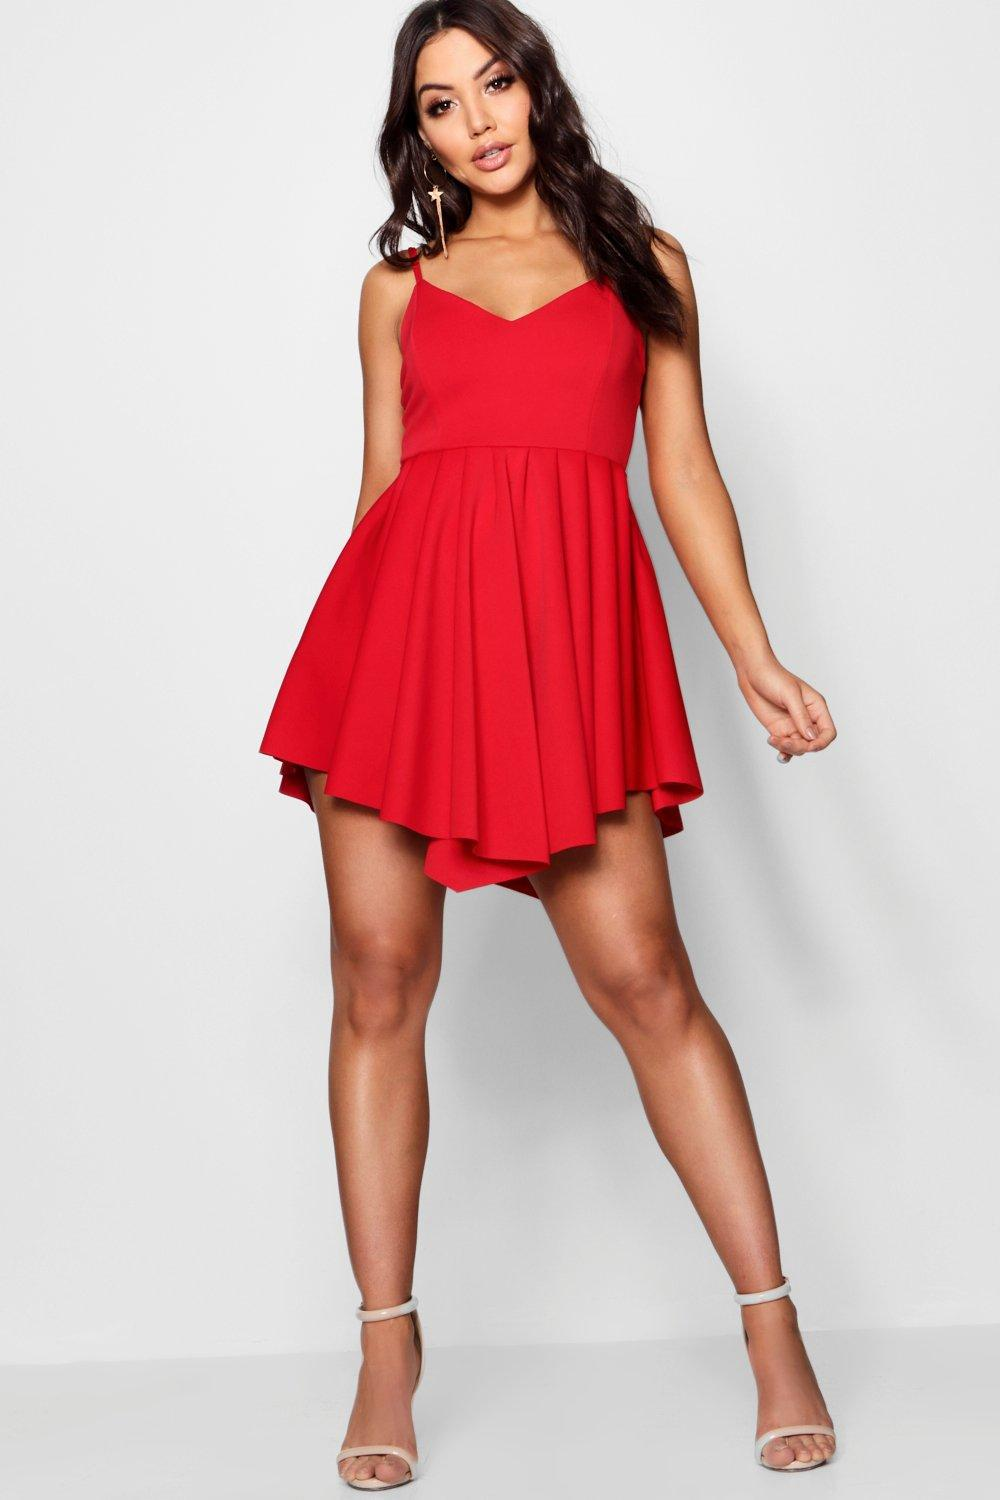 Boohoo Scuba Strappy Pleated Skater Dress in Red - Lyst 147c39288